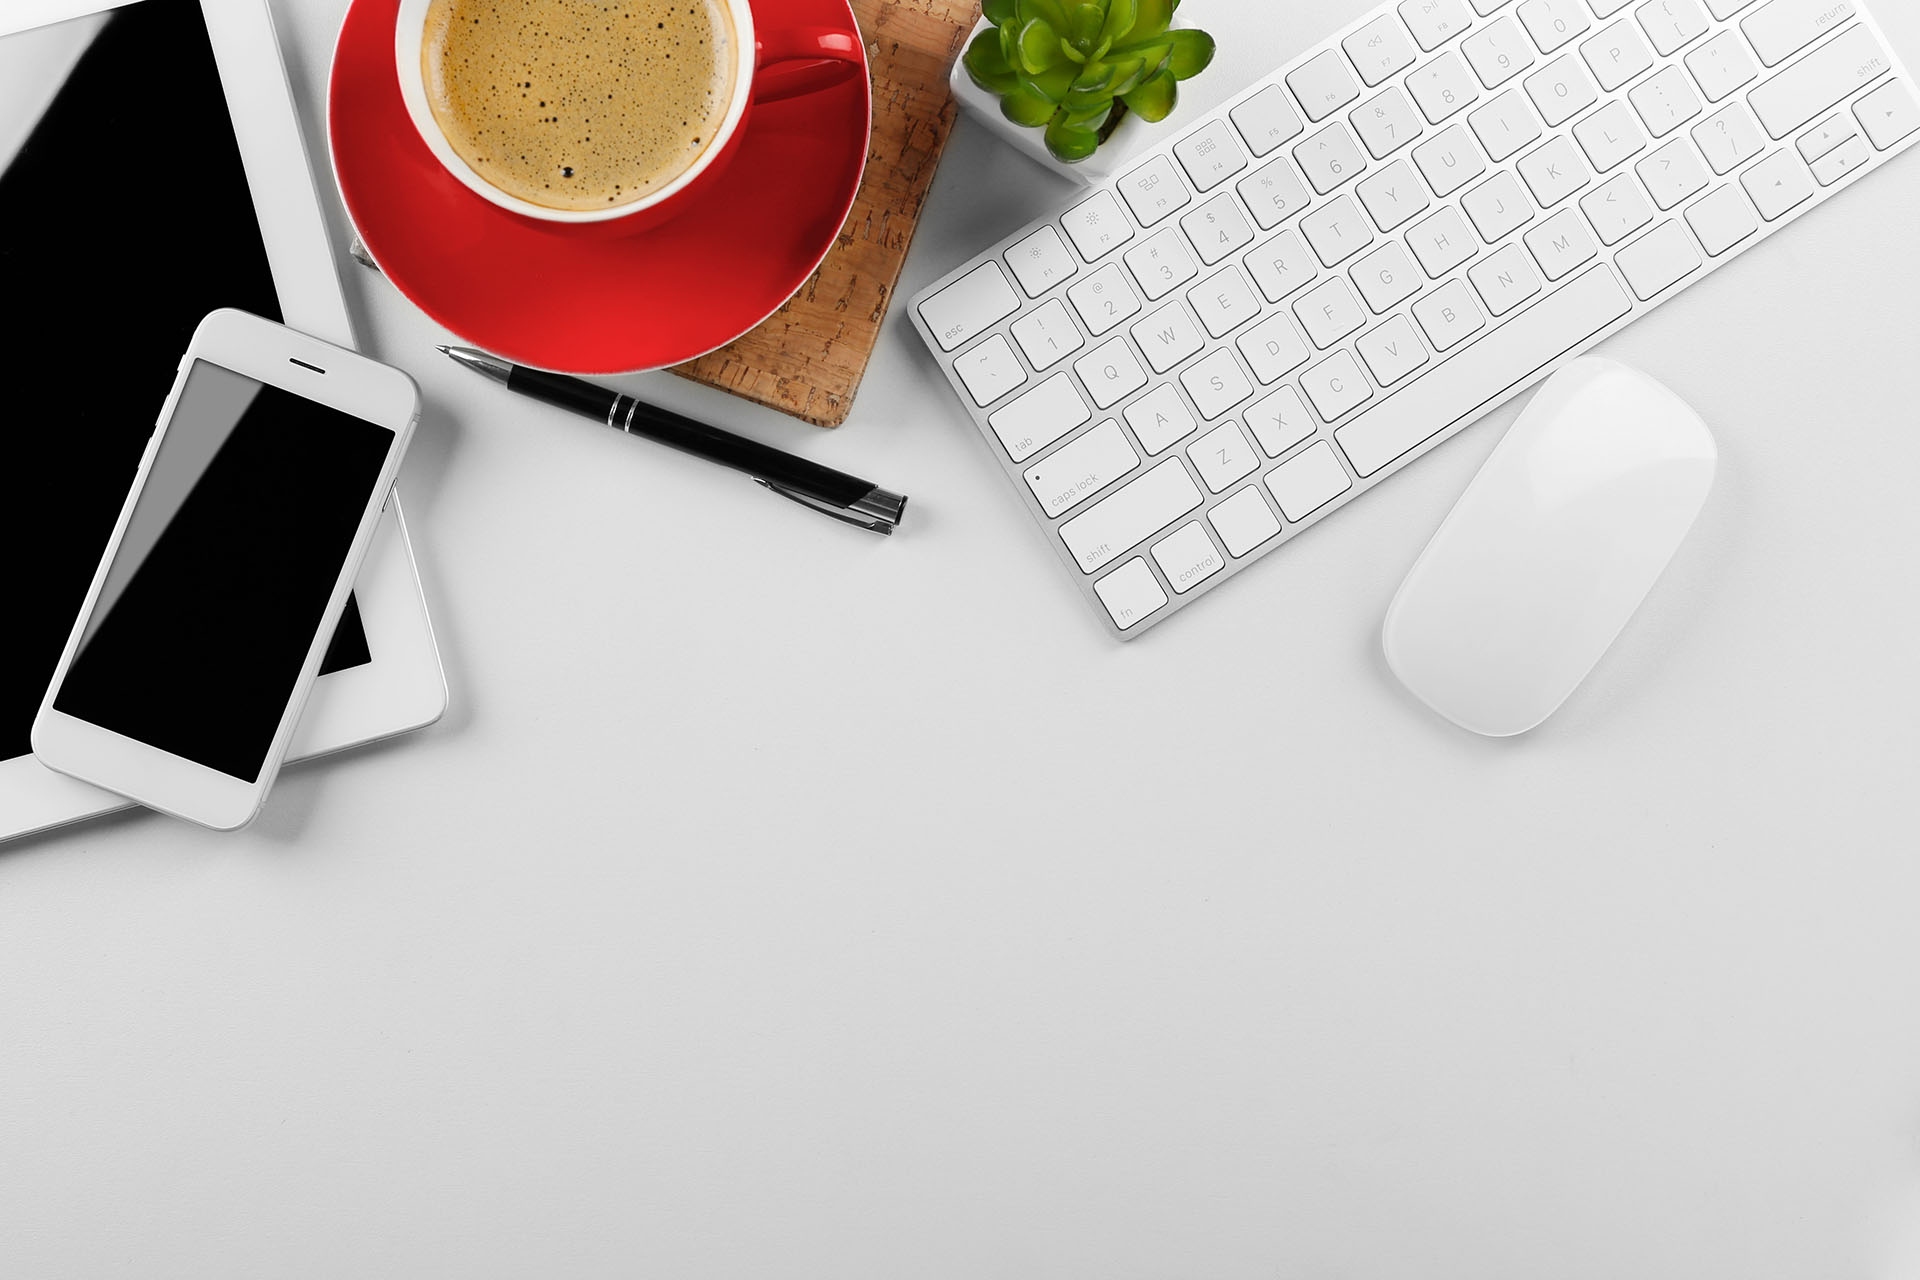 Startup Interior: Laptop, Phone and Coffee